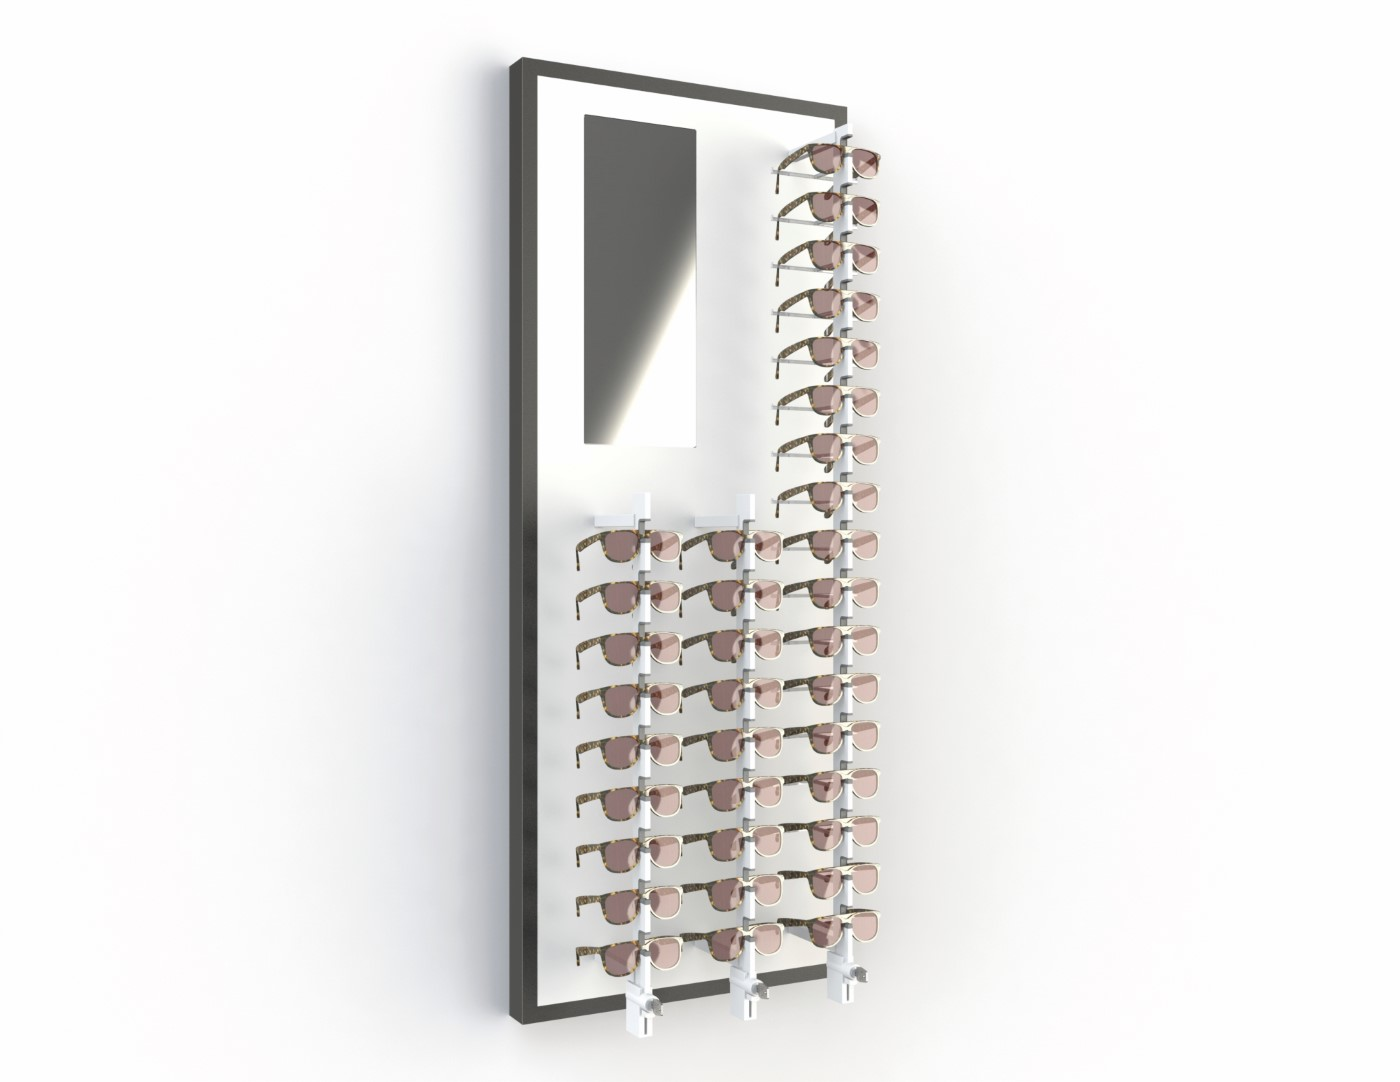 Store Elements, 600mm, 35 positions key-locked + mirror, black ledge